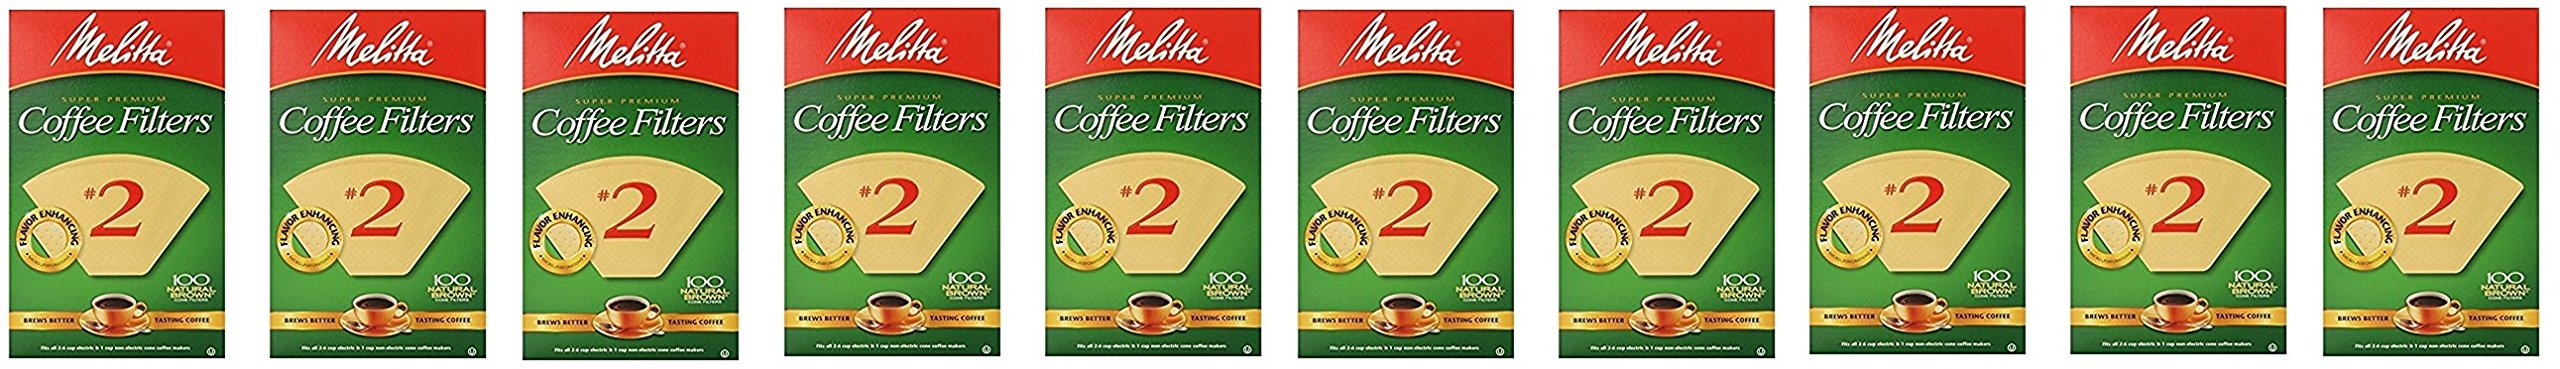 Cone Coffee Filter #2 - Natural Brown 100 Count (2 Pack) (Pack of 5) by Melitta